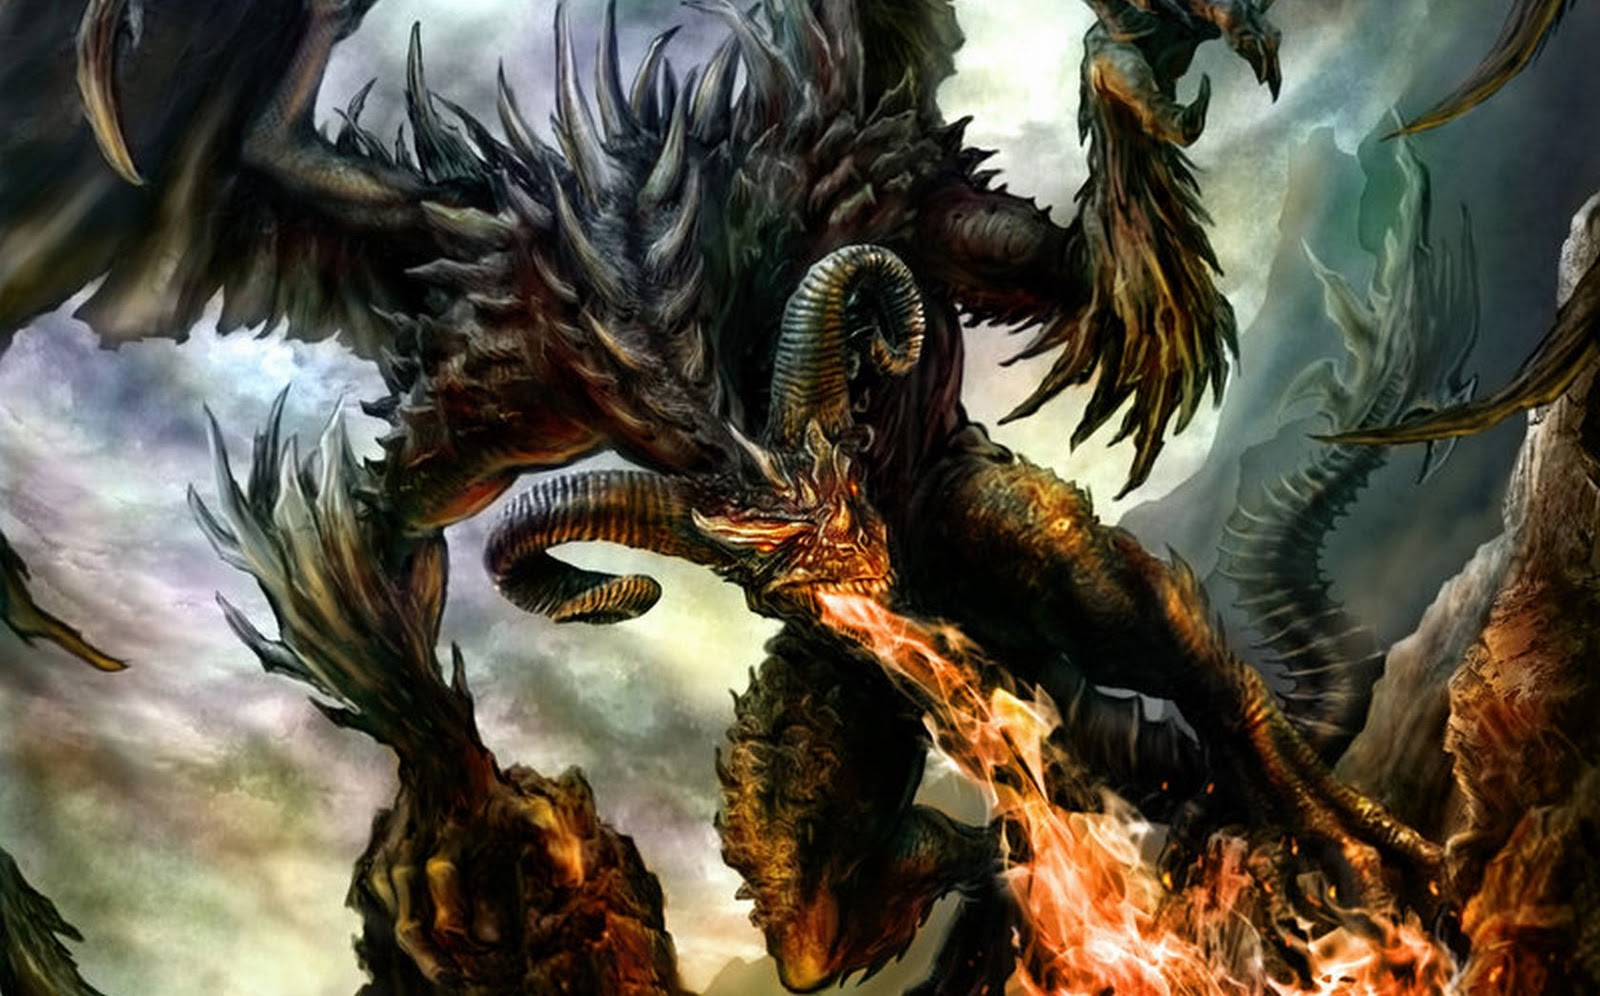 Epic Dragon Wallpaper on samsung galaxy wallpaper